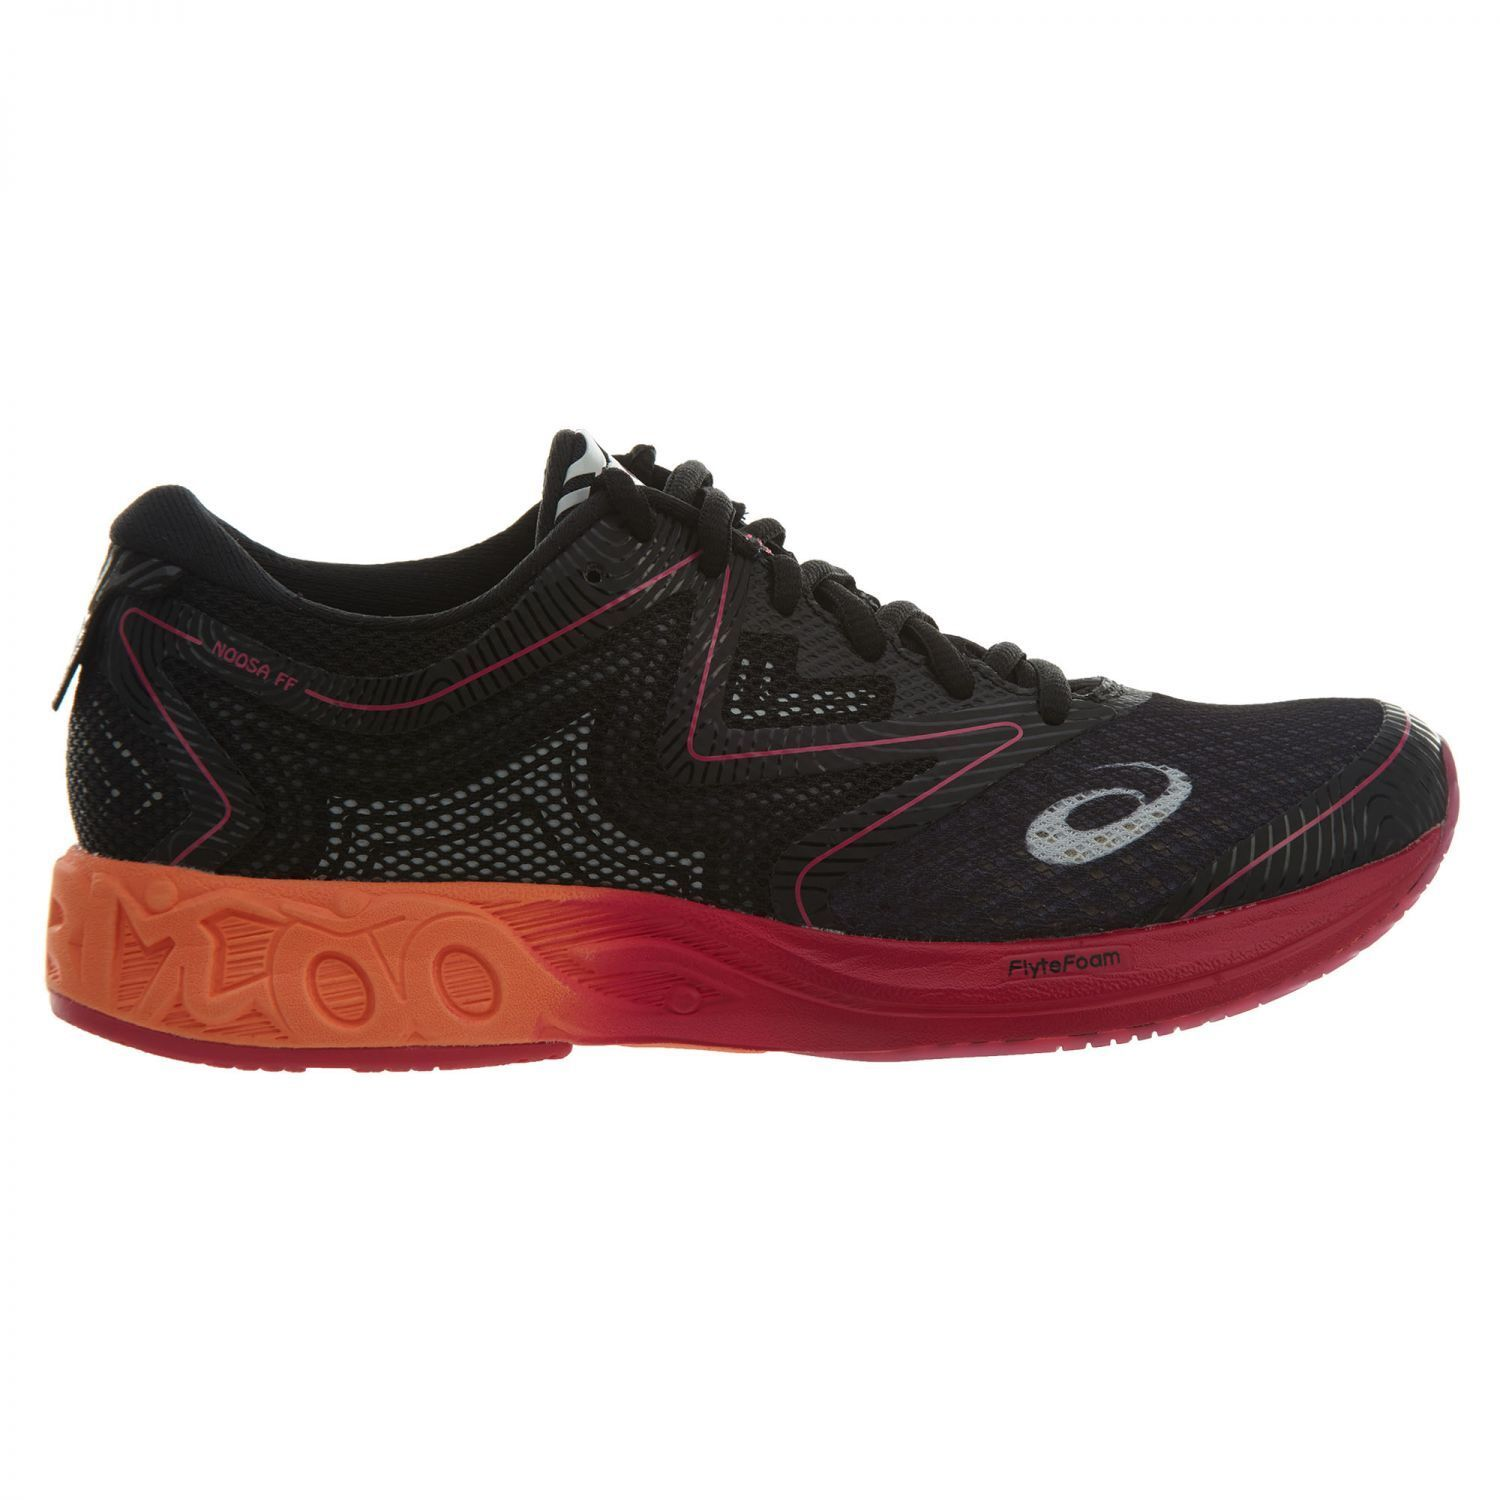 Asics Noosa FF Womens T772N-9030 Black Hot Orange Pink Running Shoes Comfortable New shoes for men and women, limited time discount